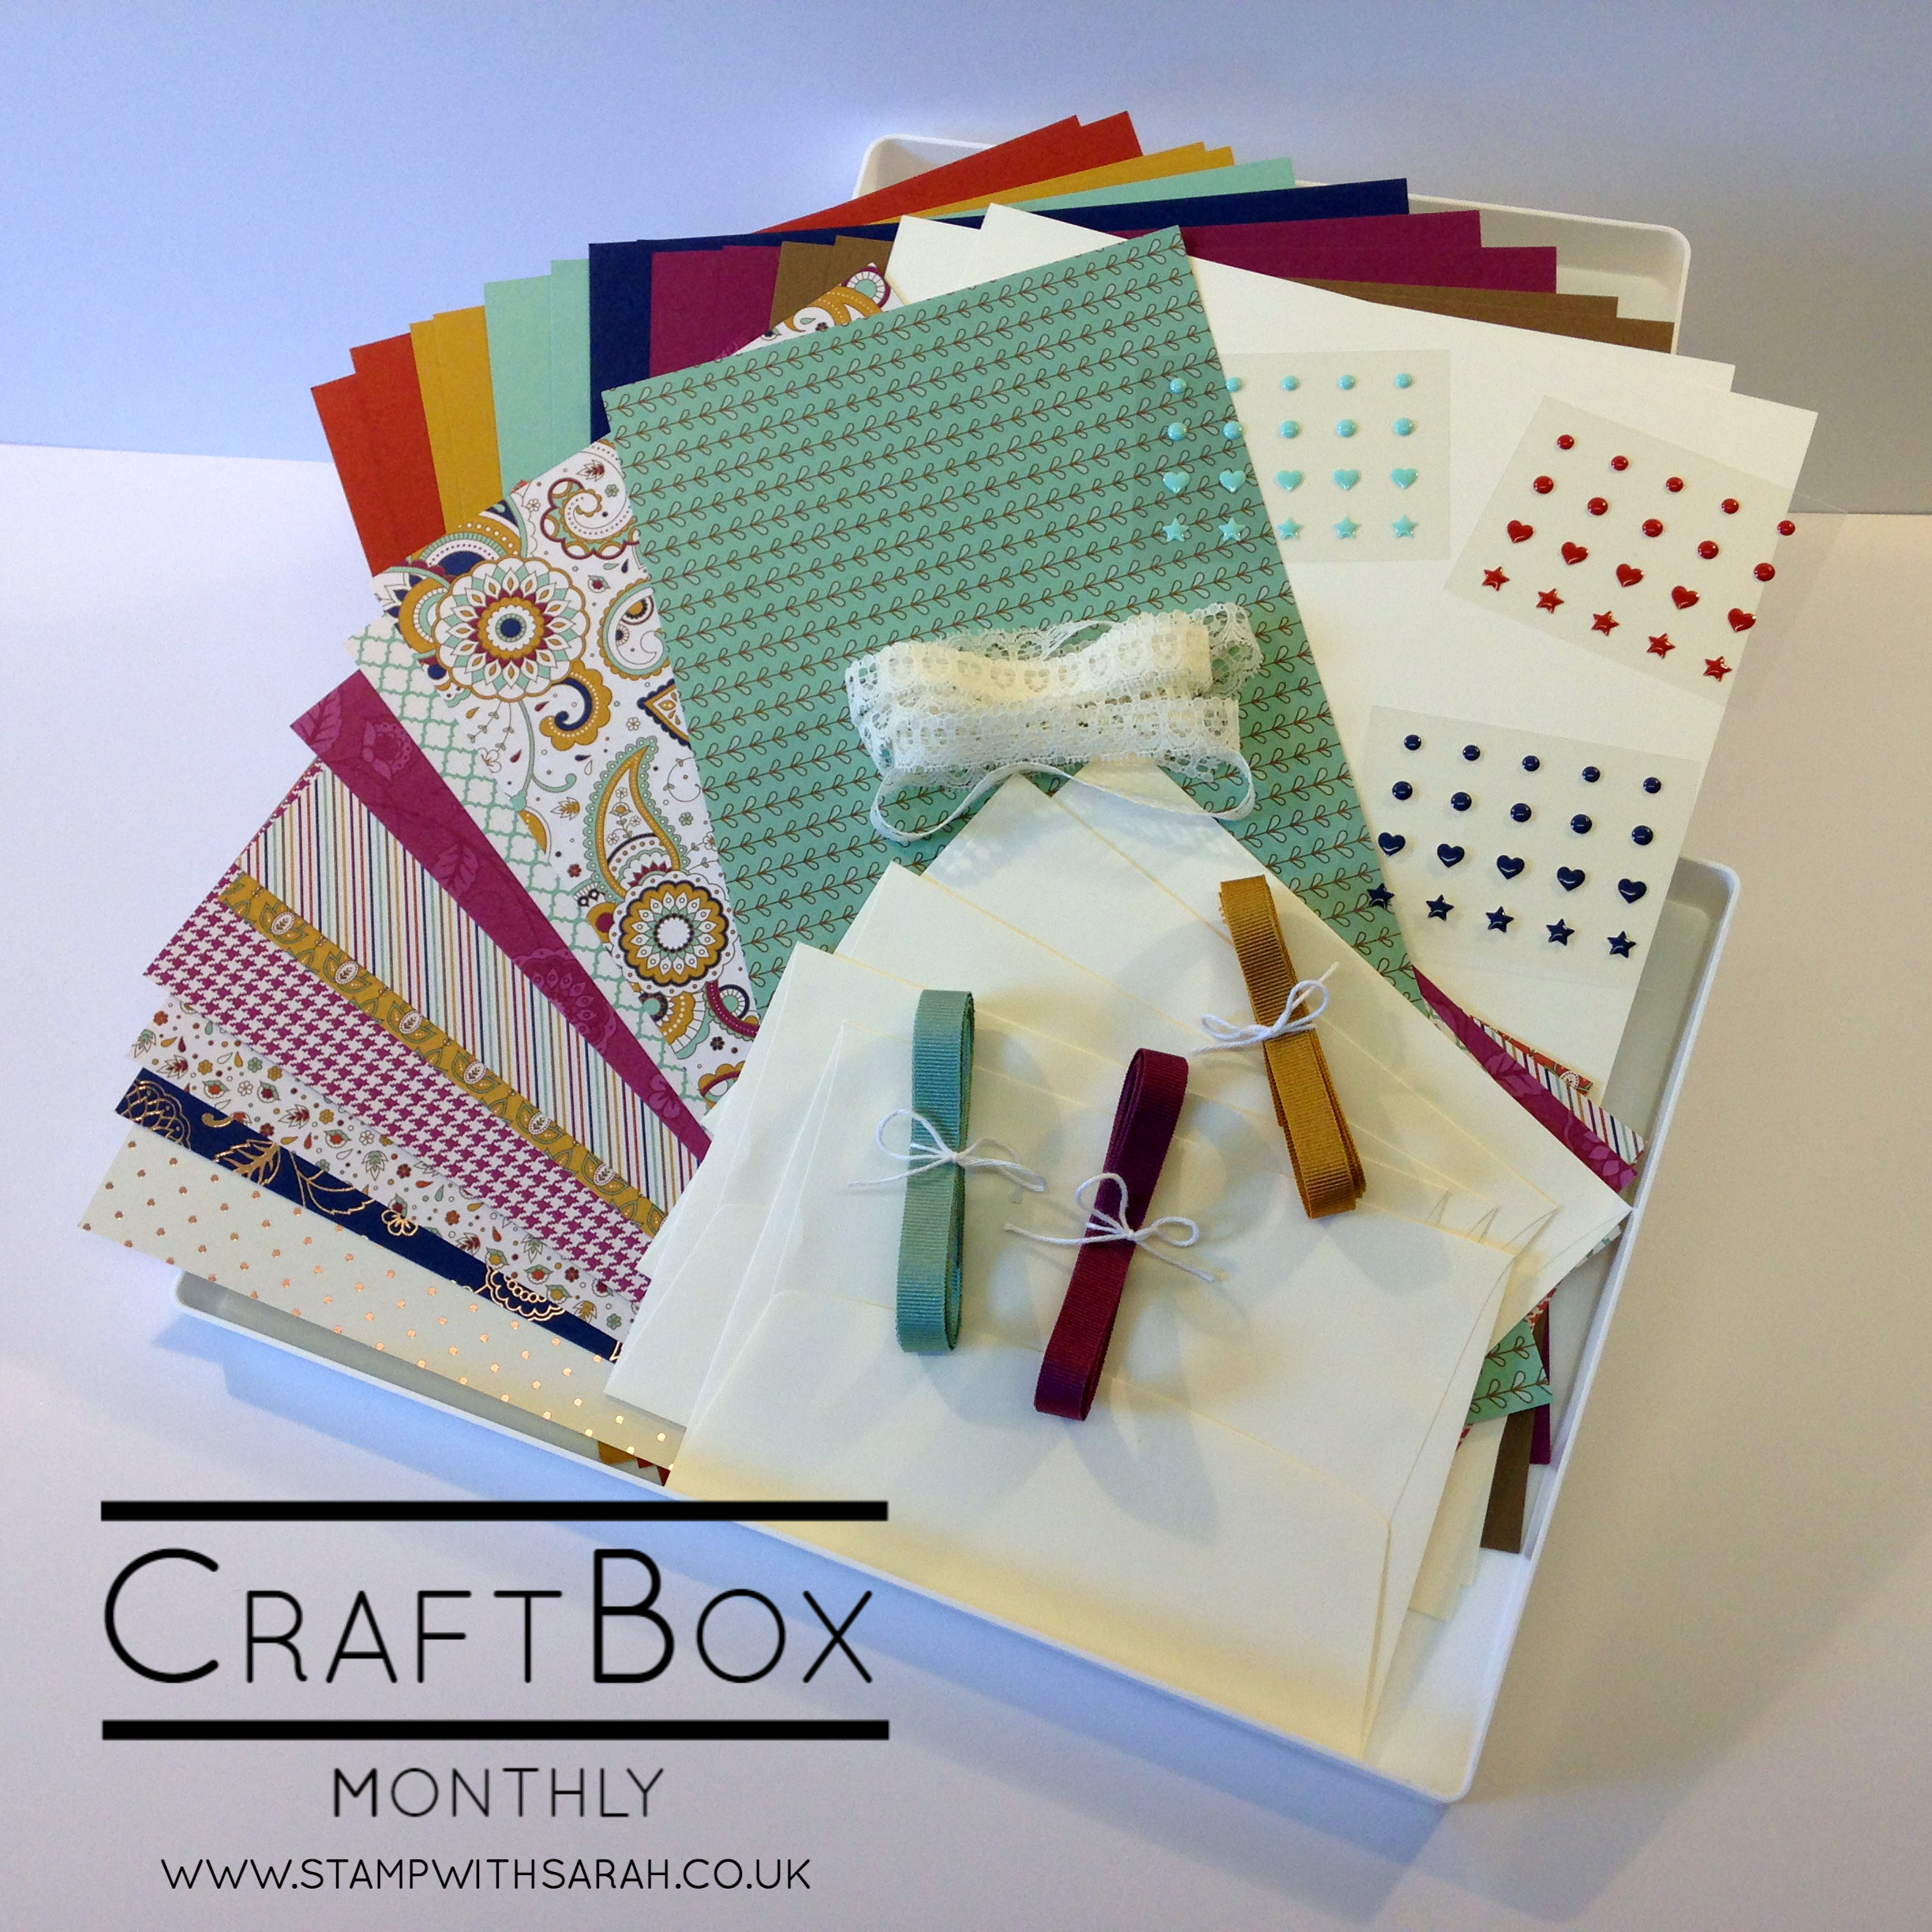 CraftBox is coming in September!